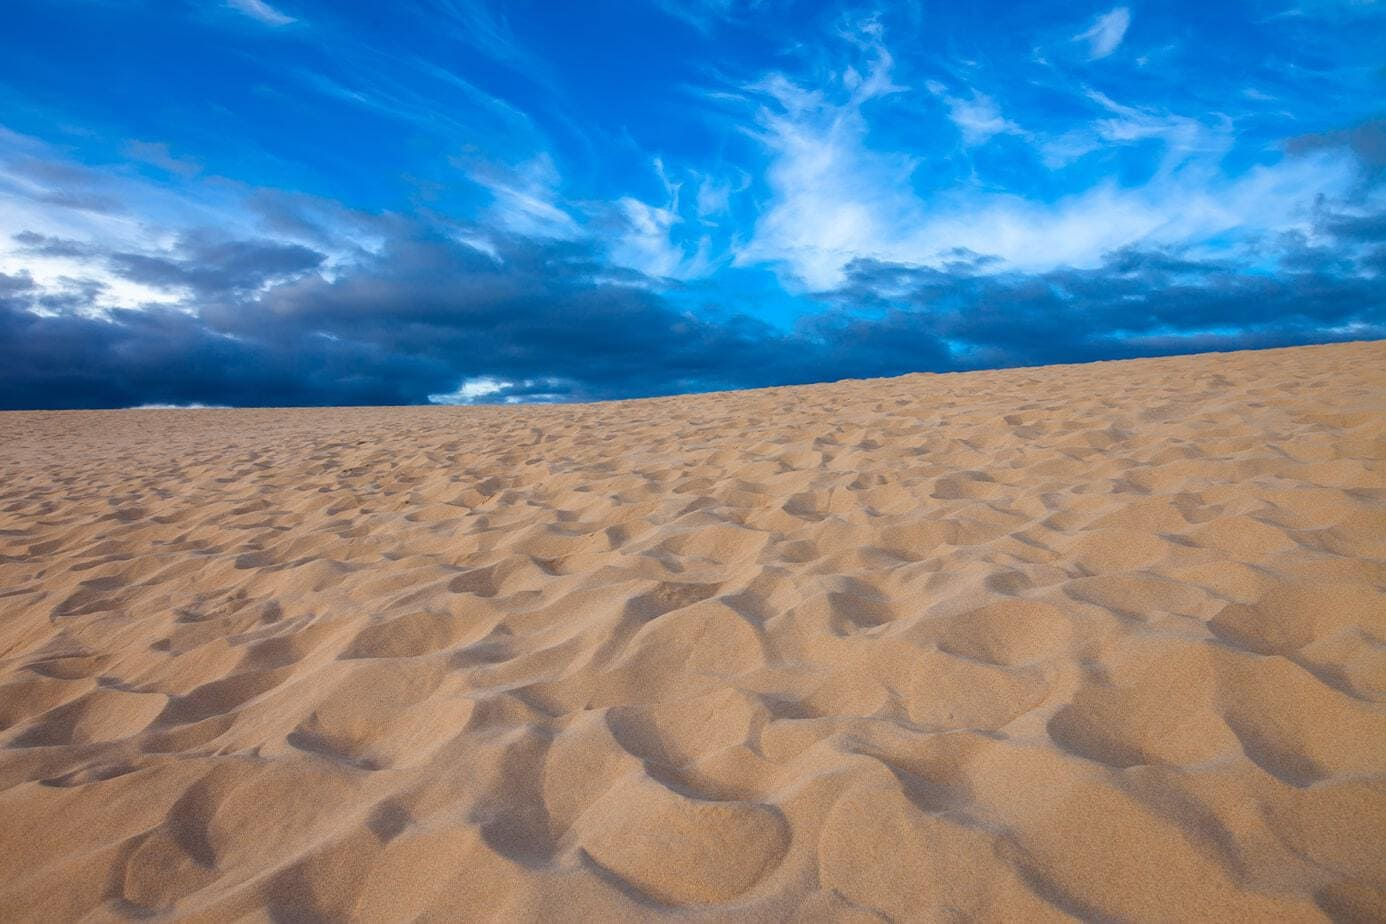 Desert background landscape. Corralejo dunes in Fuerteventura, Canary islands, Spain.